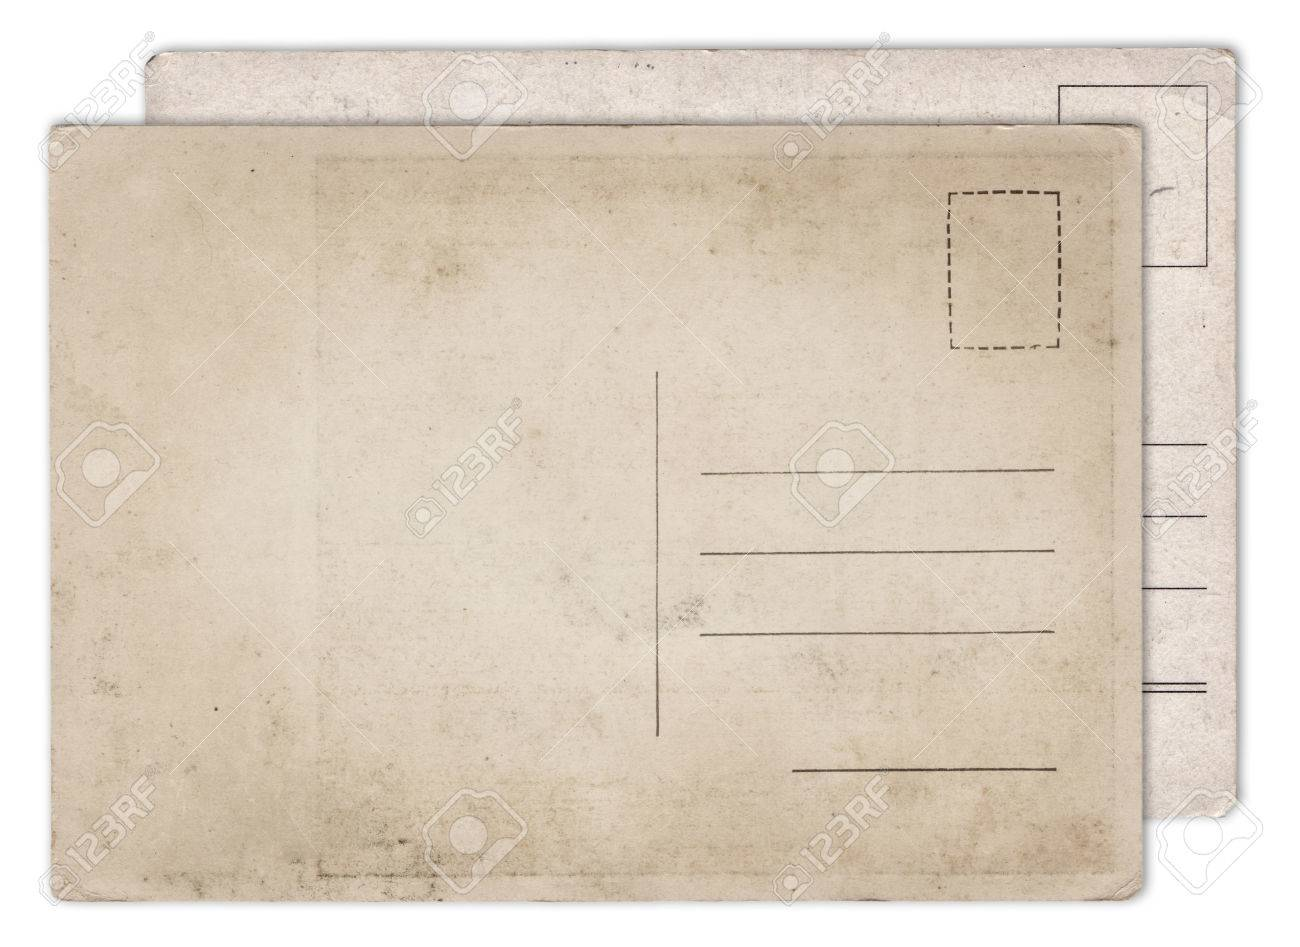 two blank old vintage postcard isolated on white background stock